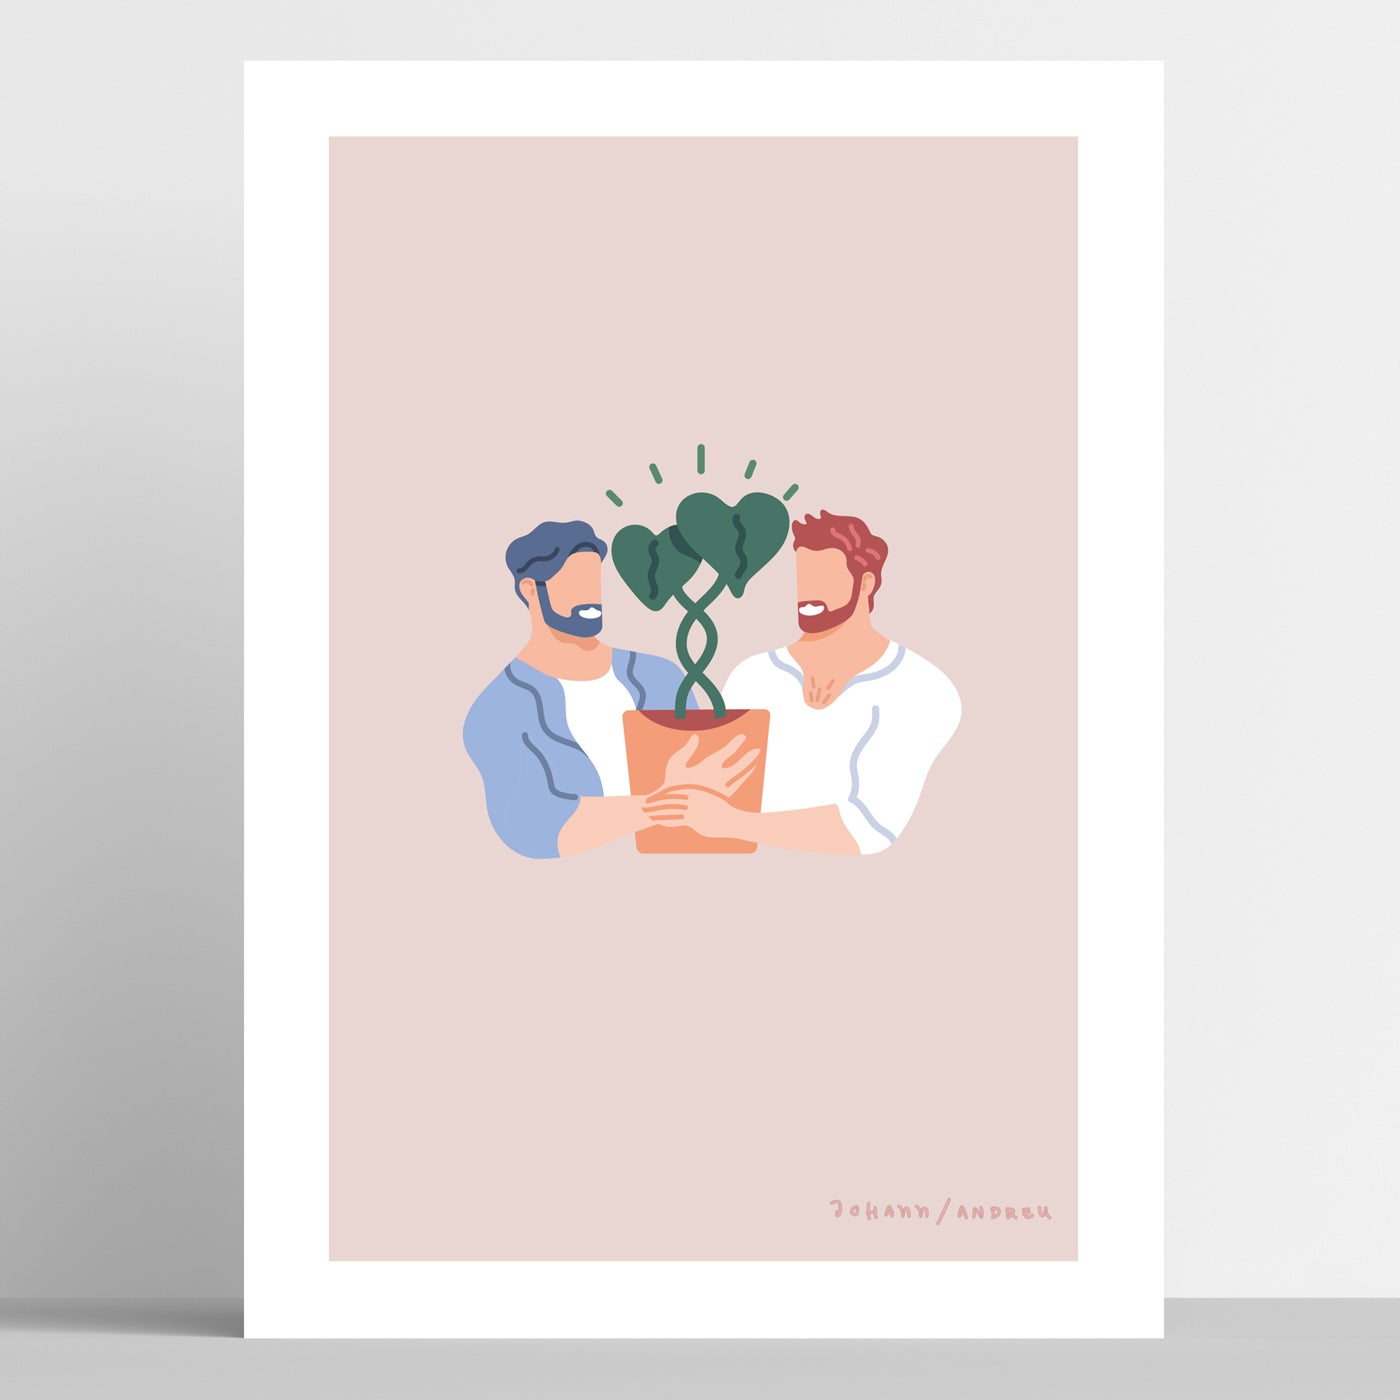 """We Love Plants"" - Artprint"